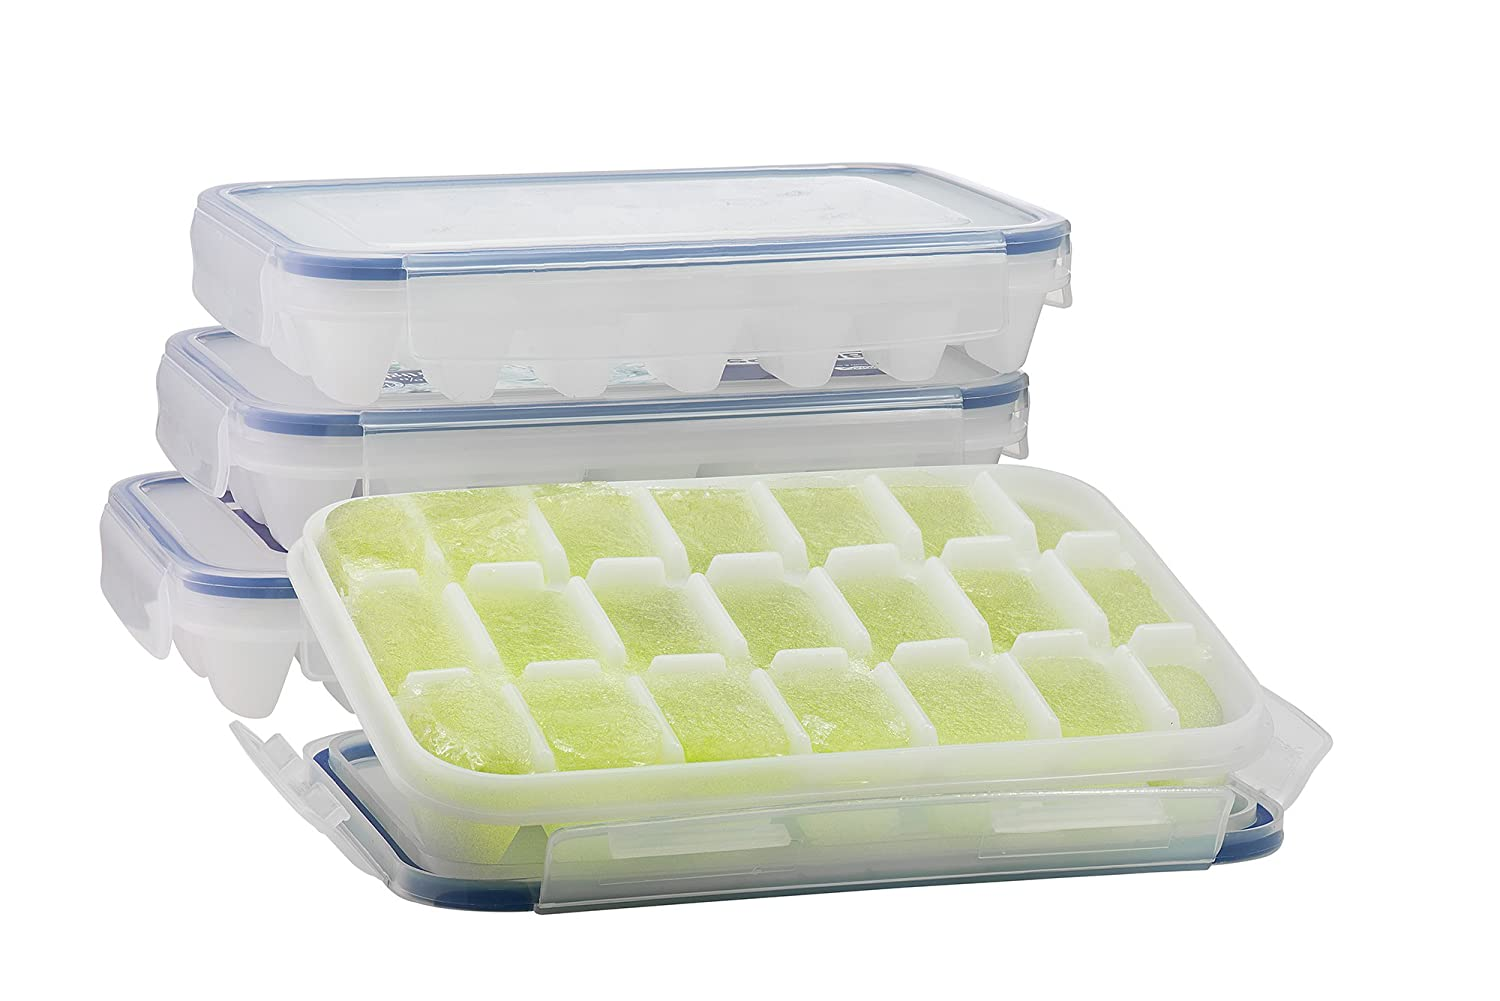 Amazoncom Komax Ice Cube Tray with Nospill Cover Set of 4 BPA